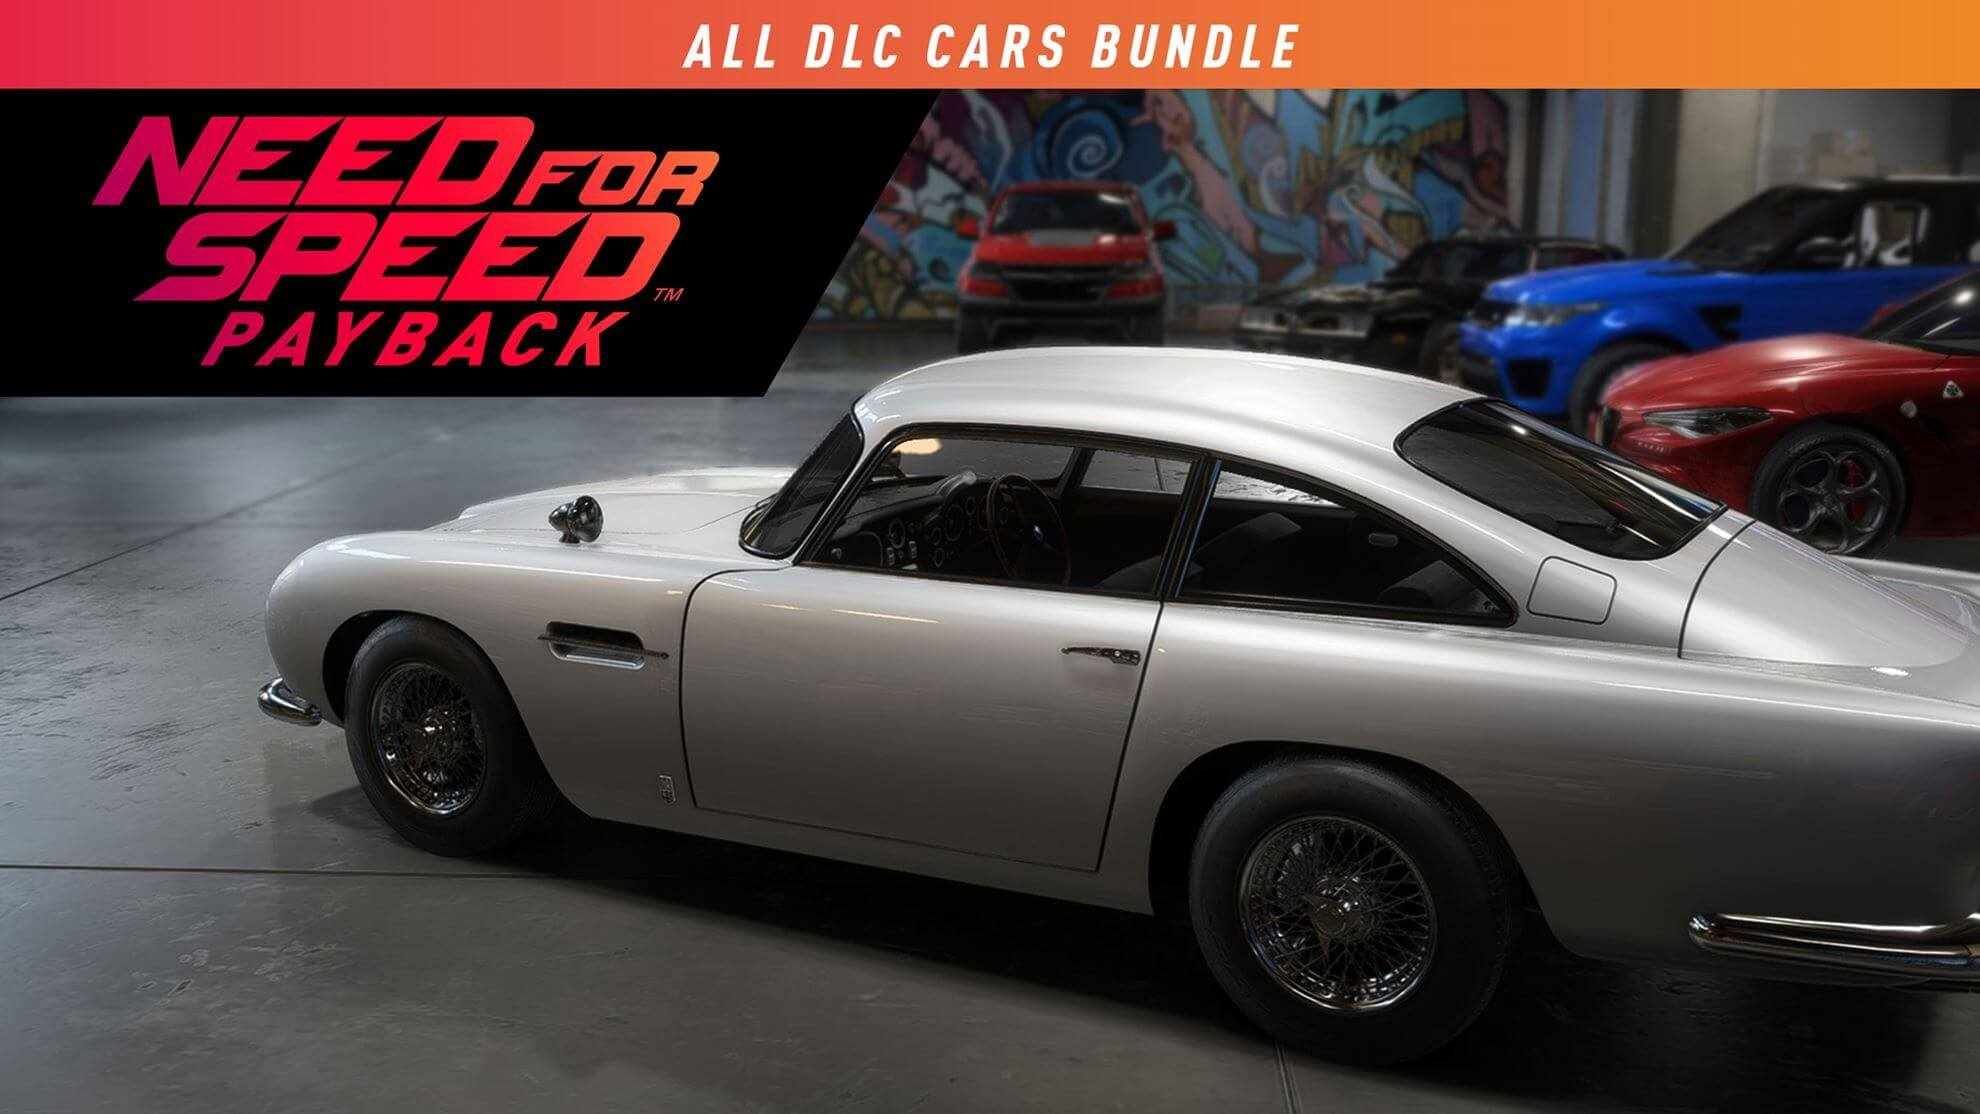 Need for Speed™ Payback: All DLC cars bundle